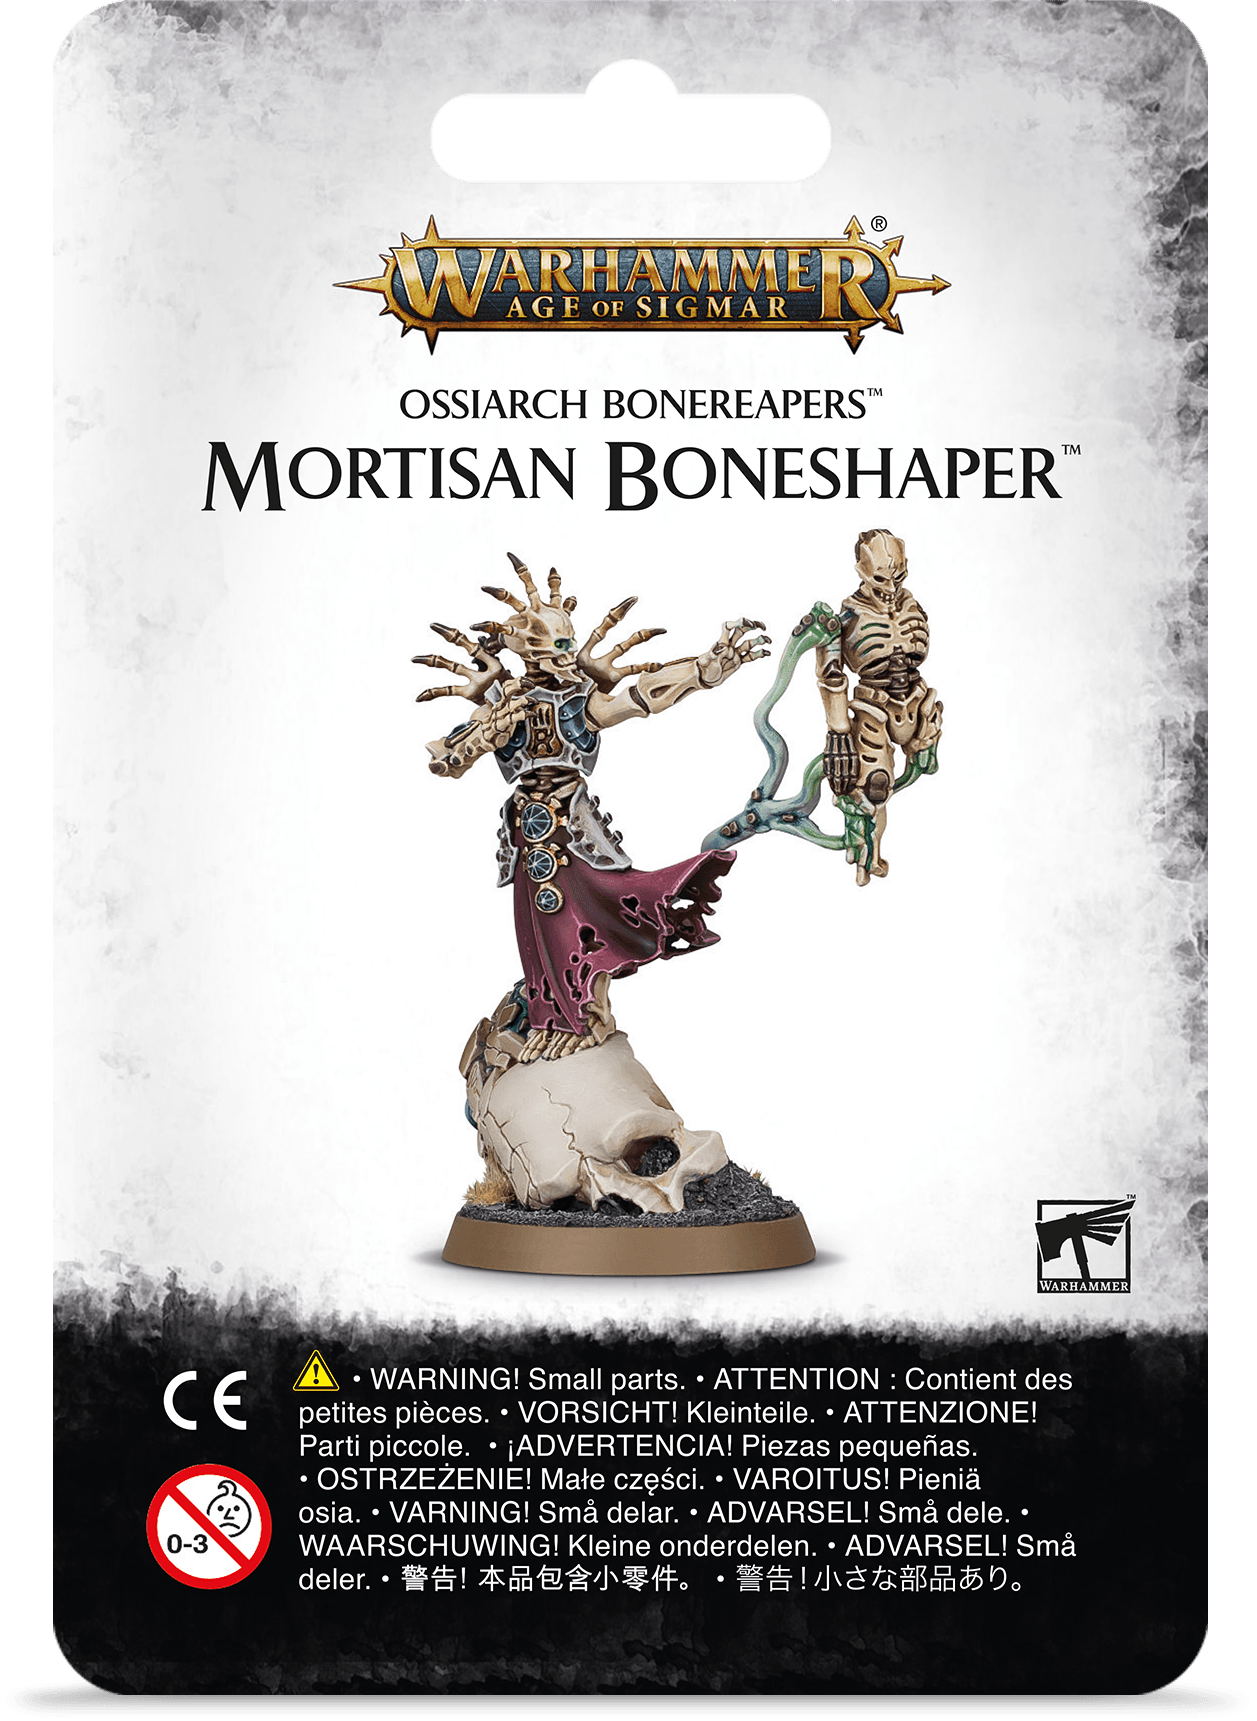 Warhammer Age Of Sigmar: Ossiarch Bonereapers: MORTISAN BONESHAPER